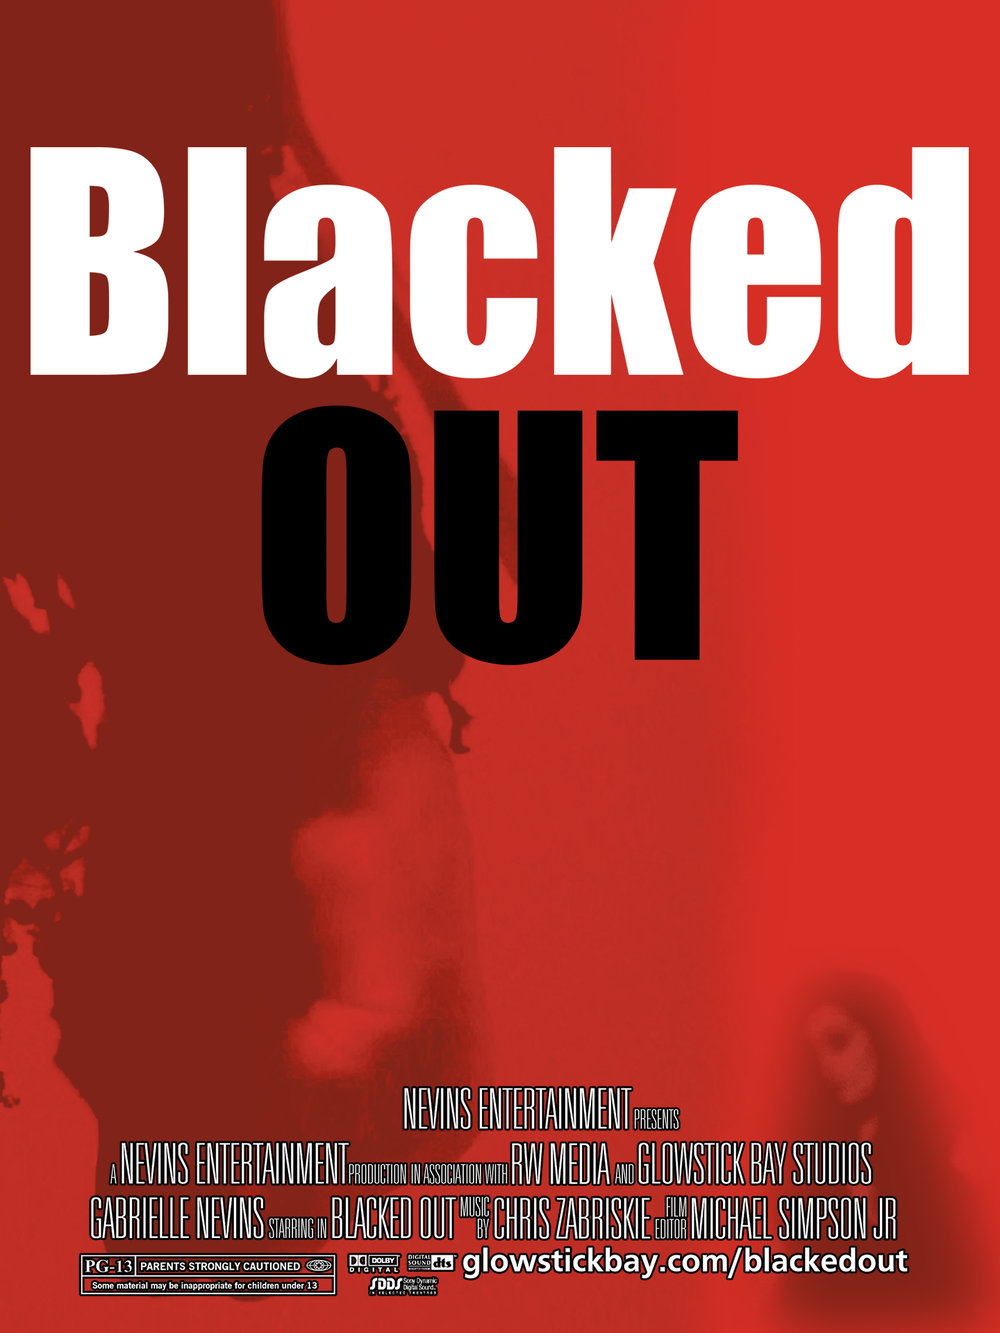 Blacked Out Poster 1 RGB web version.jpg